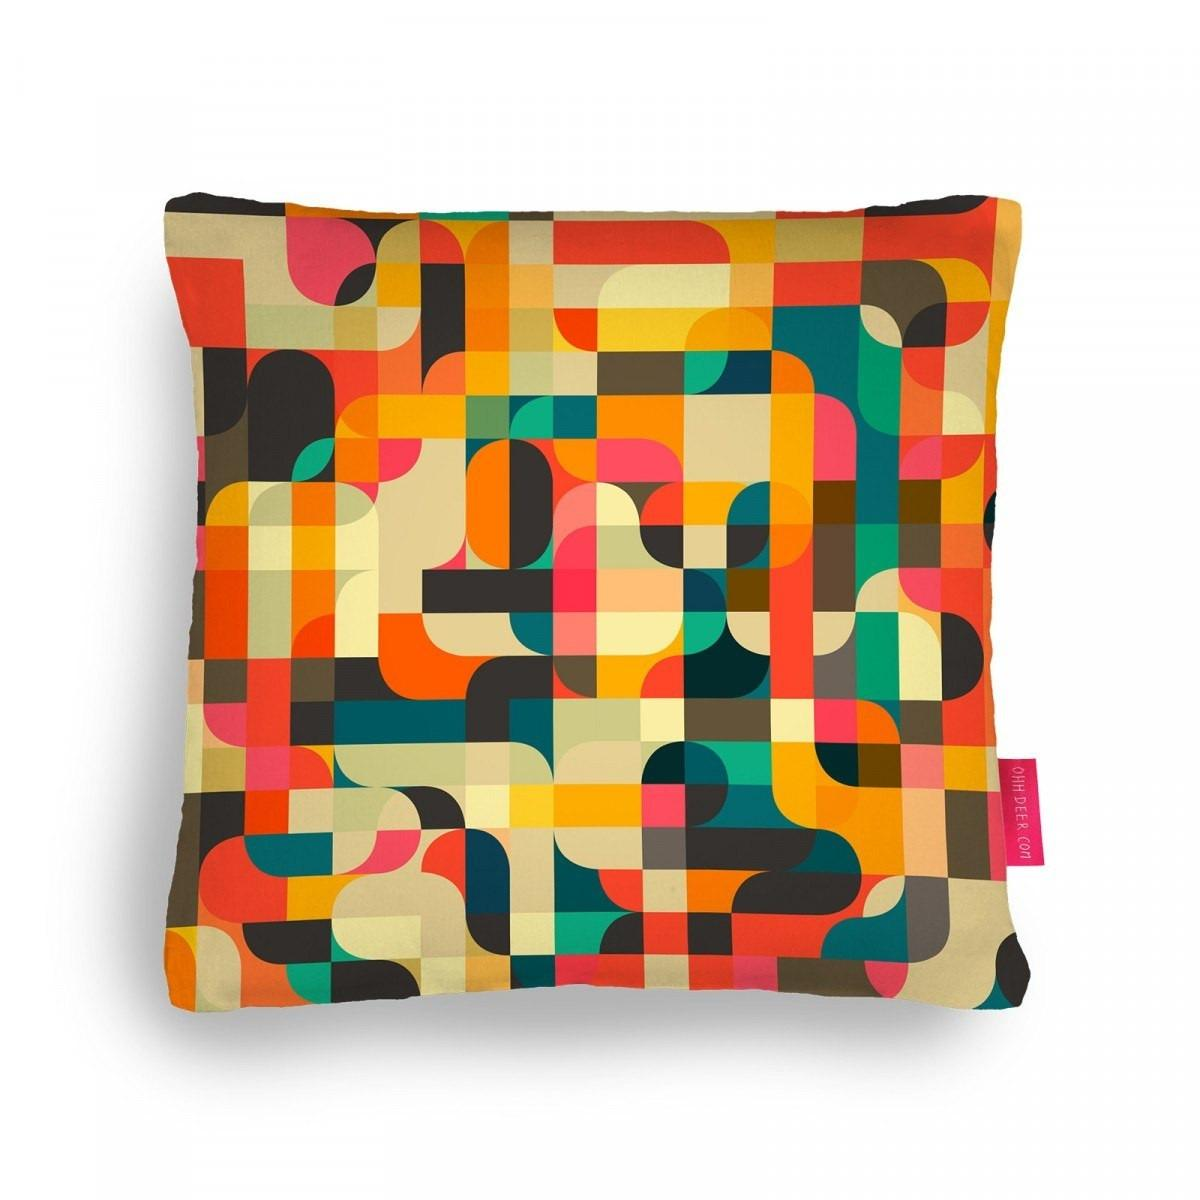 Retrospector Cushion Decorative Pillow